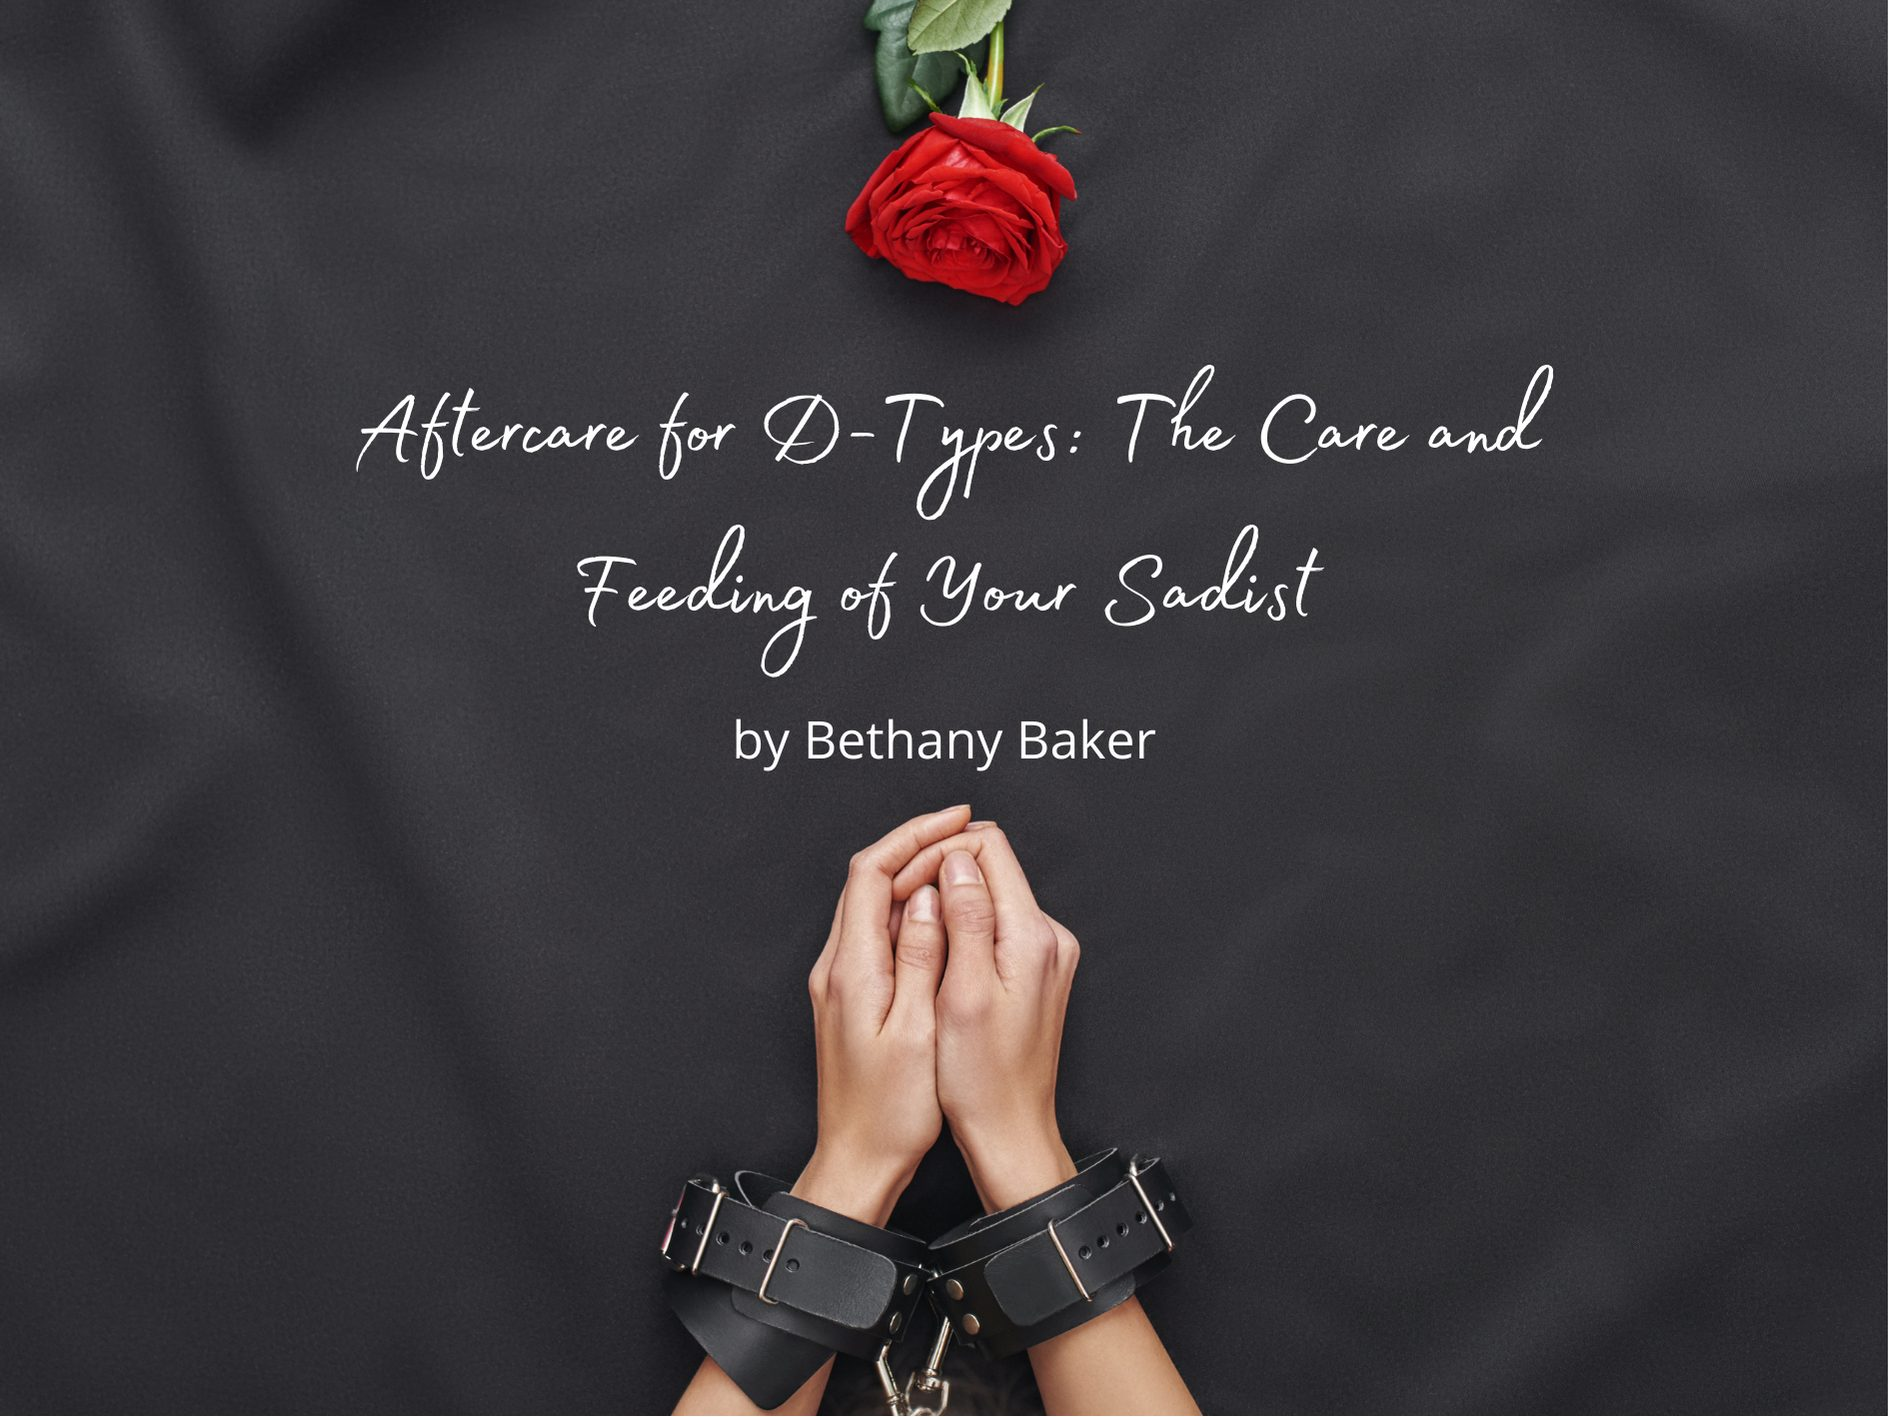 [Guest Post] Aftercare for D-Types: The Care and Feeding of Your Sadist by Bethany Baker